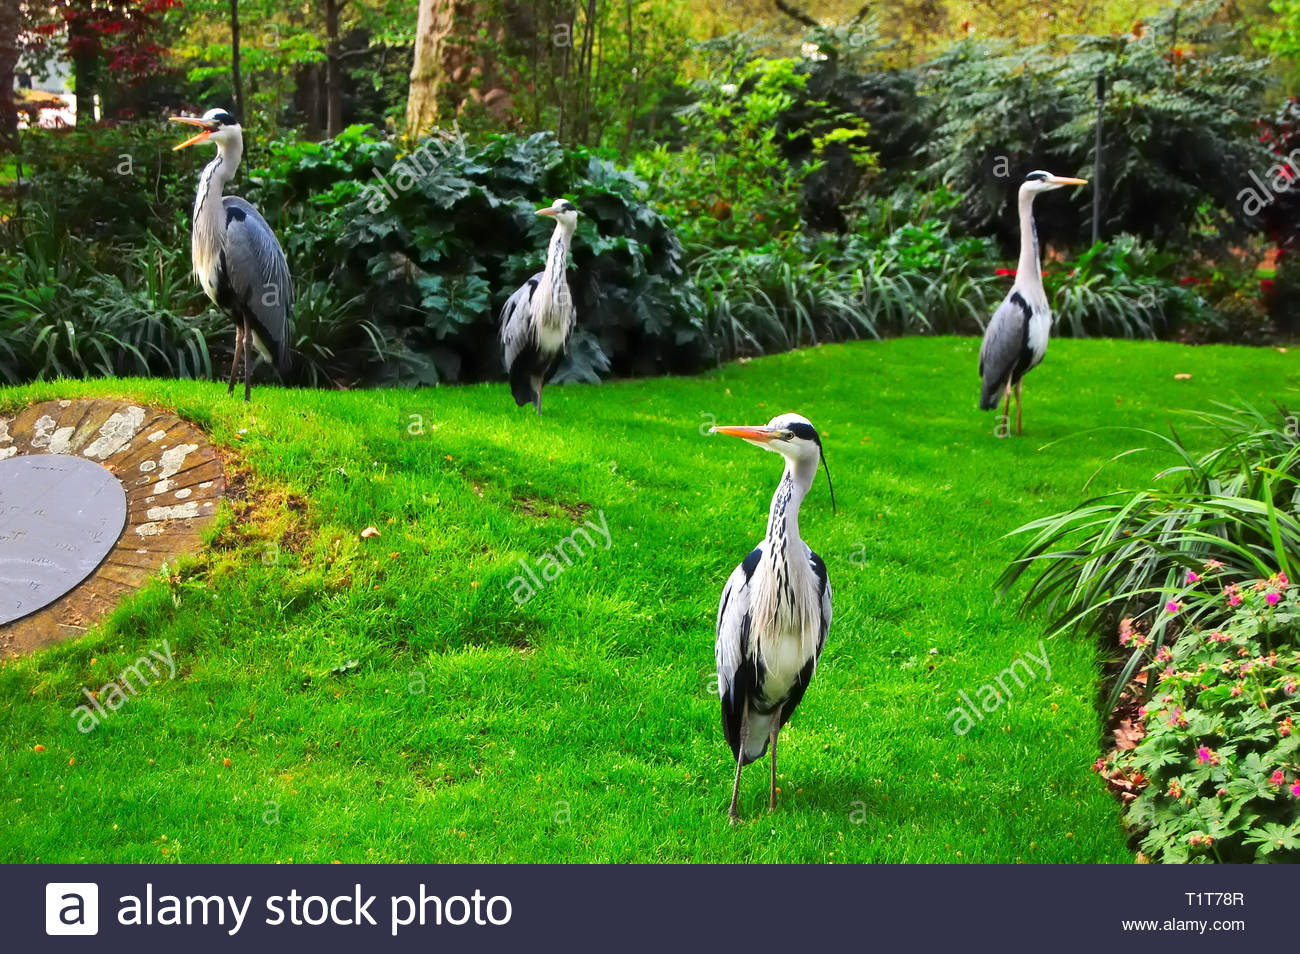 Four Heron look quizically at the photographer. London parks provide habitat for wild bird species. - Stock Image